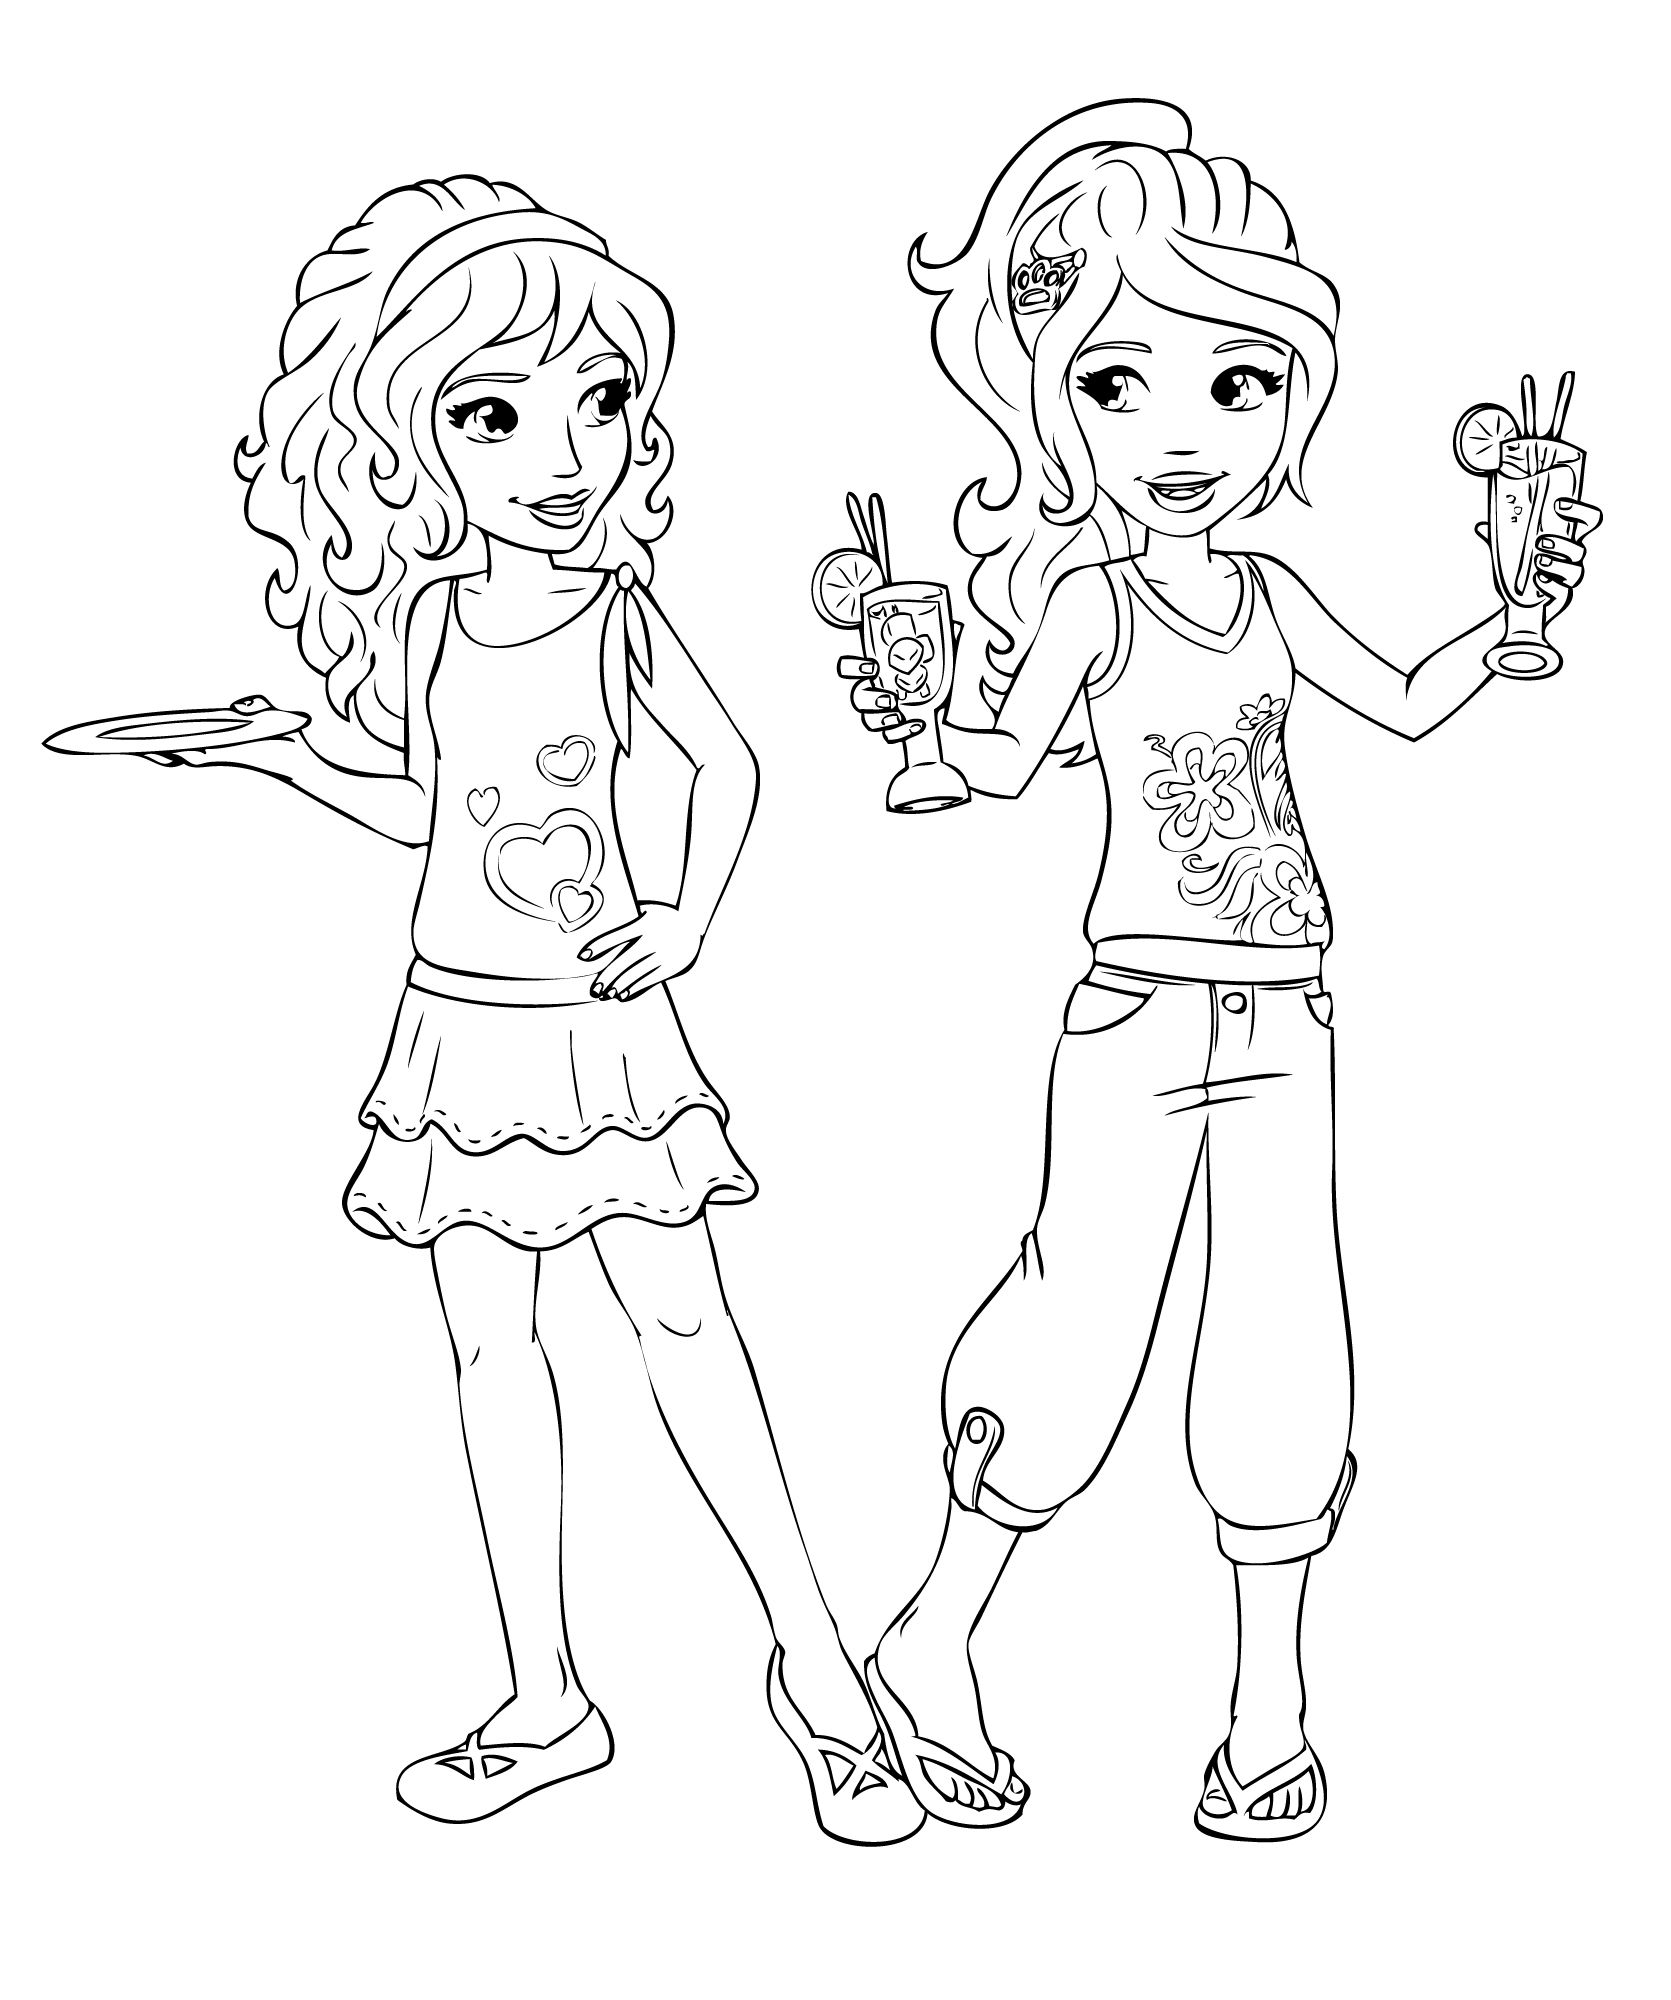 1671x2000 Lego Friends Coloring Pages Tagged With Best Friends Coloring